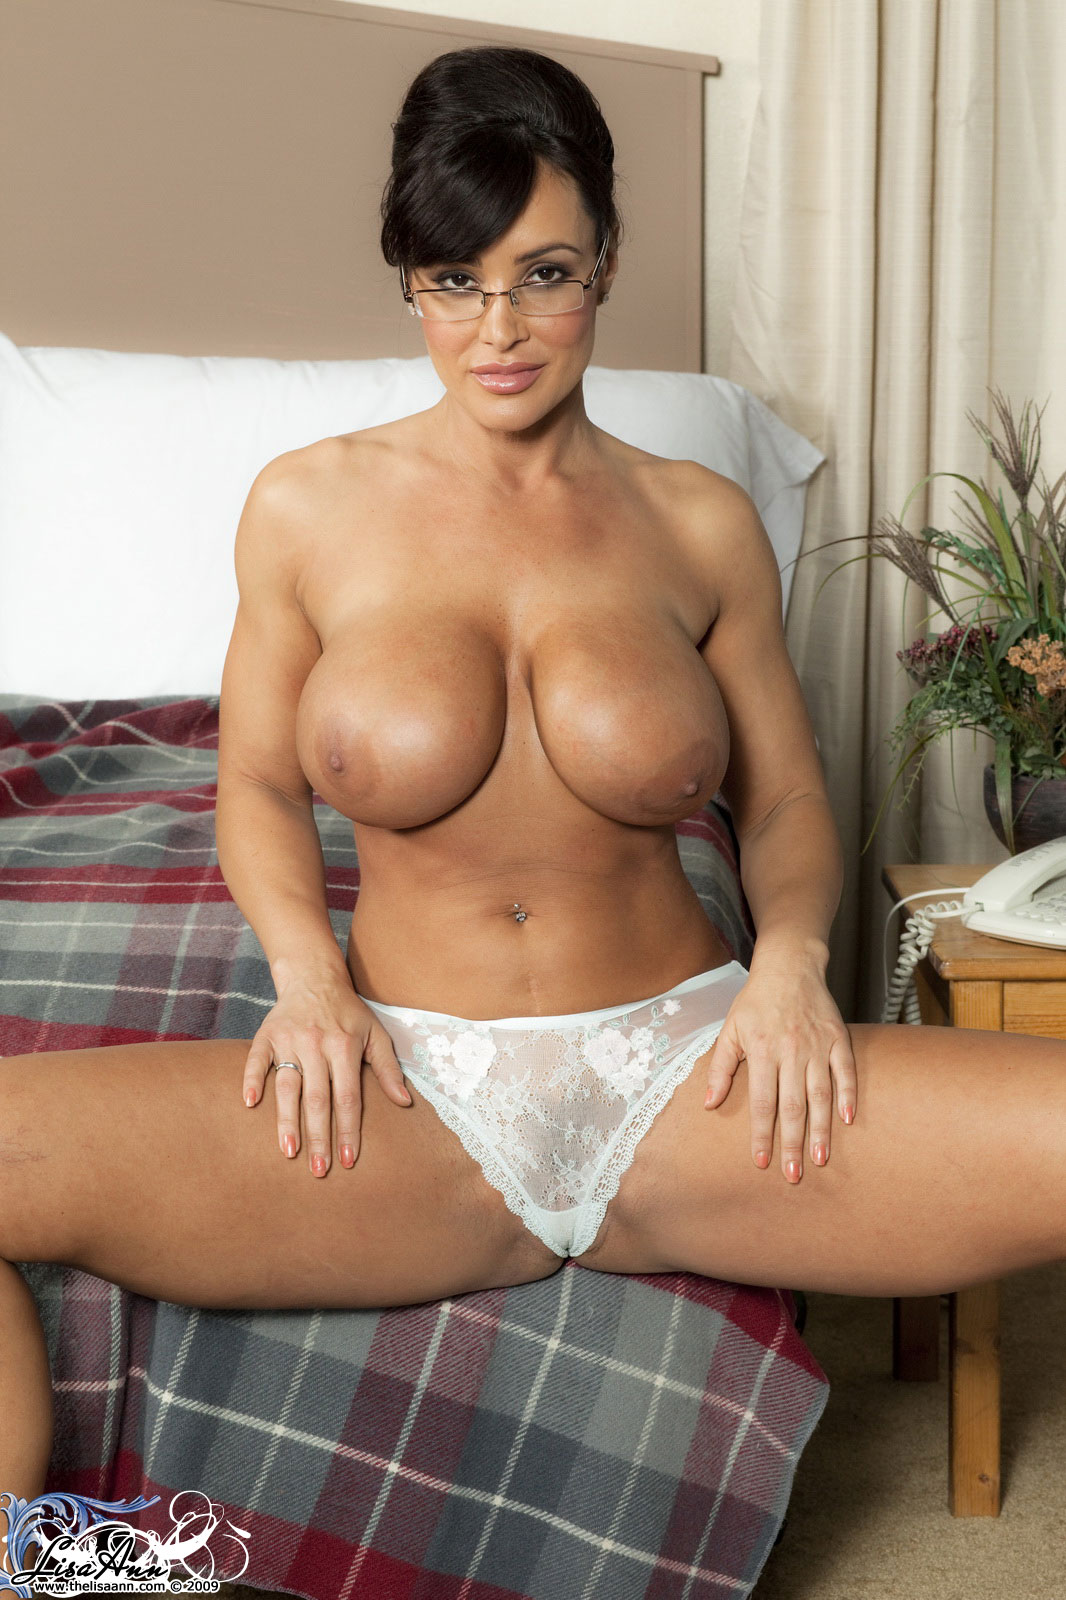 Express gratitude nude lisa ann theme, will